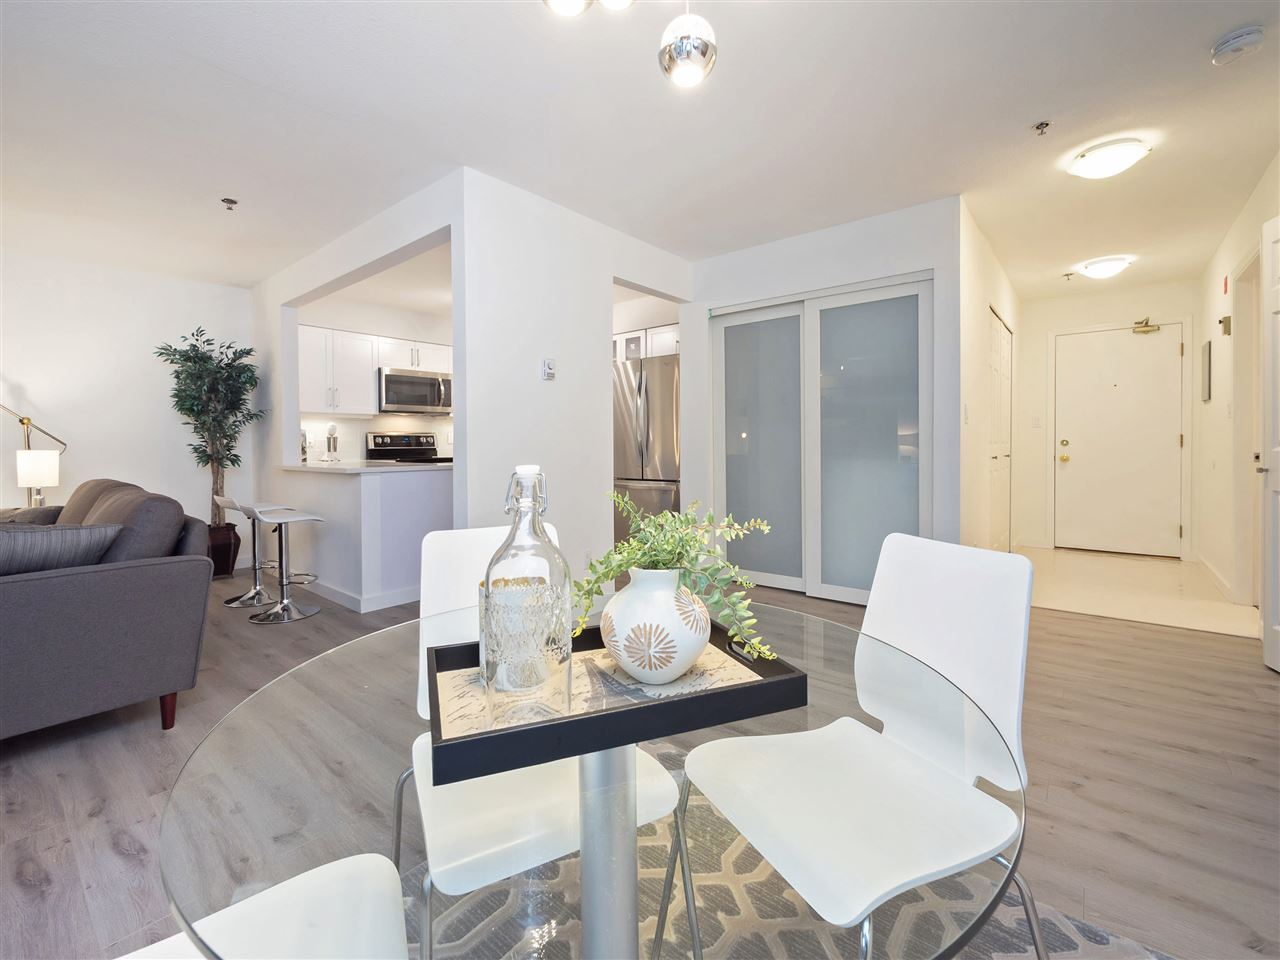 Condo Apartment at 211 1148 WESTWOOD STREET, Unit 211, Coquitlam, British Columbia. Image 5